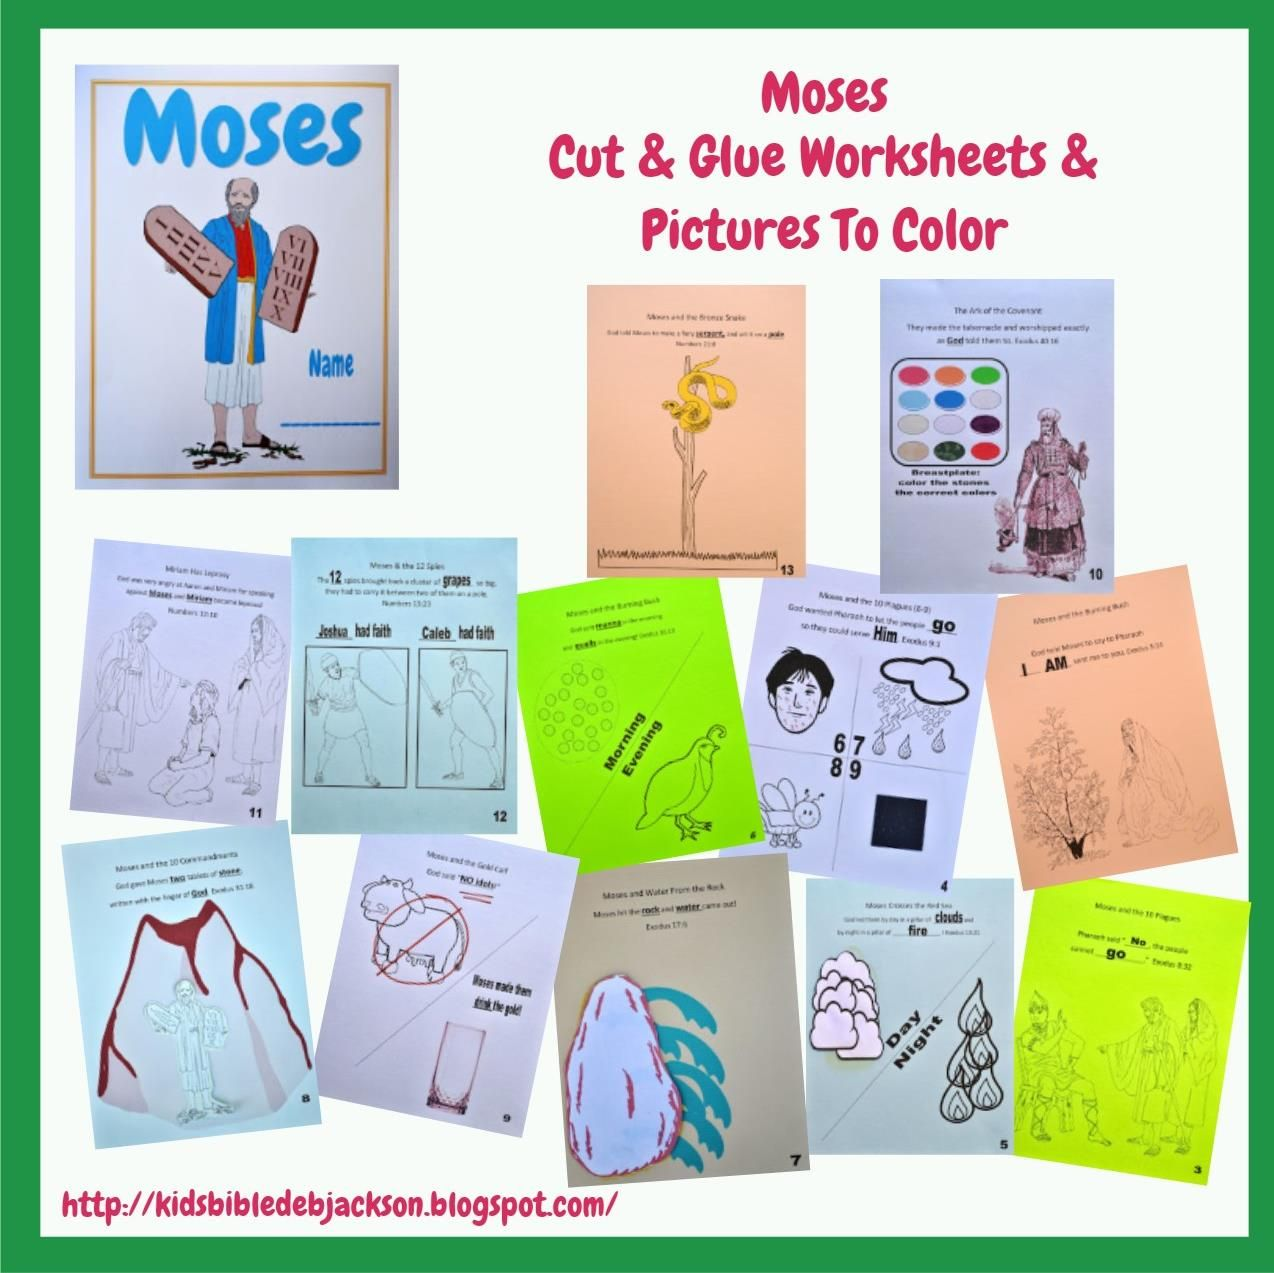 http://kidsbibledebjackson.blogspot.com/2013/08/moses-cut-glue-and ...